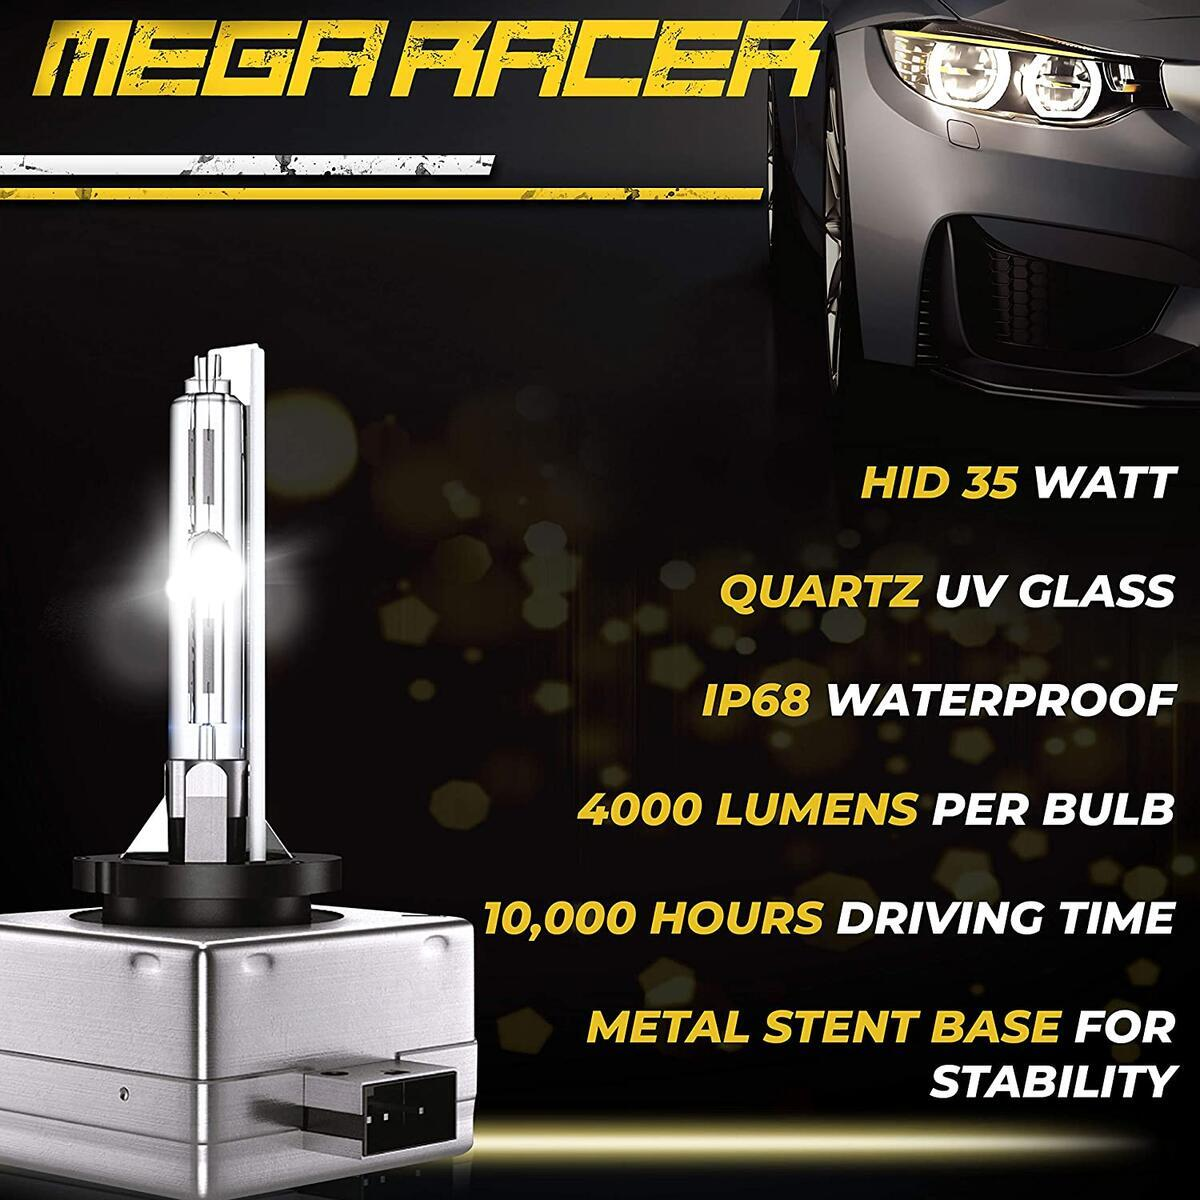 Mega Racer D1C/D1R/D1S HID Headlight Bulb for High Beam Low Beam 35W 8000K Ice Blue 8000 Lumens Xenon Headlights IP68 Waterproof, Pack of 2